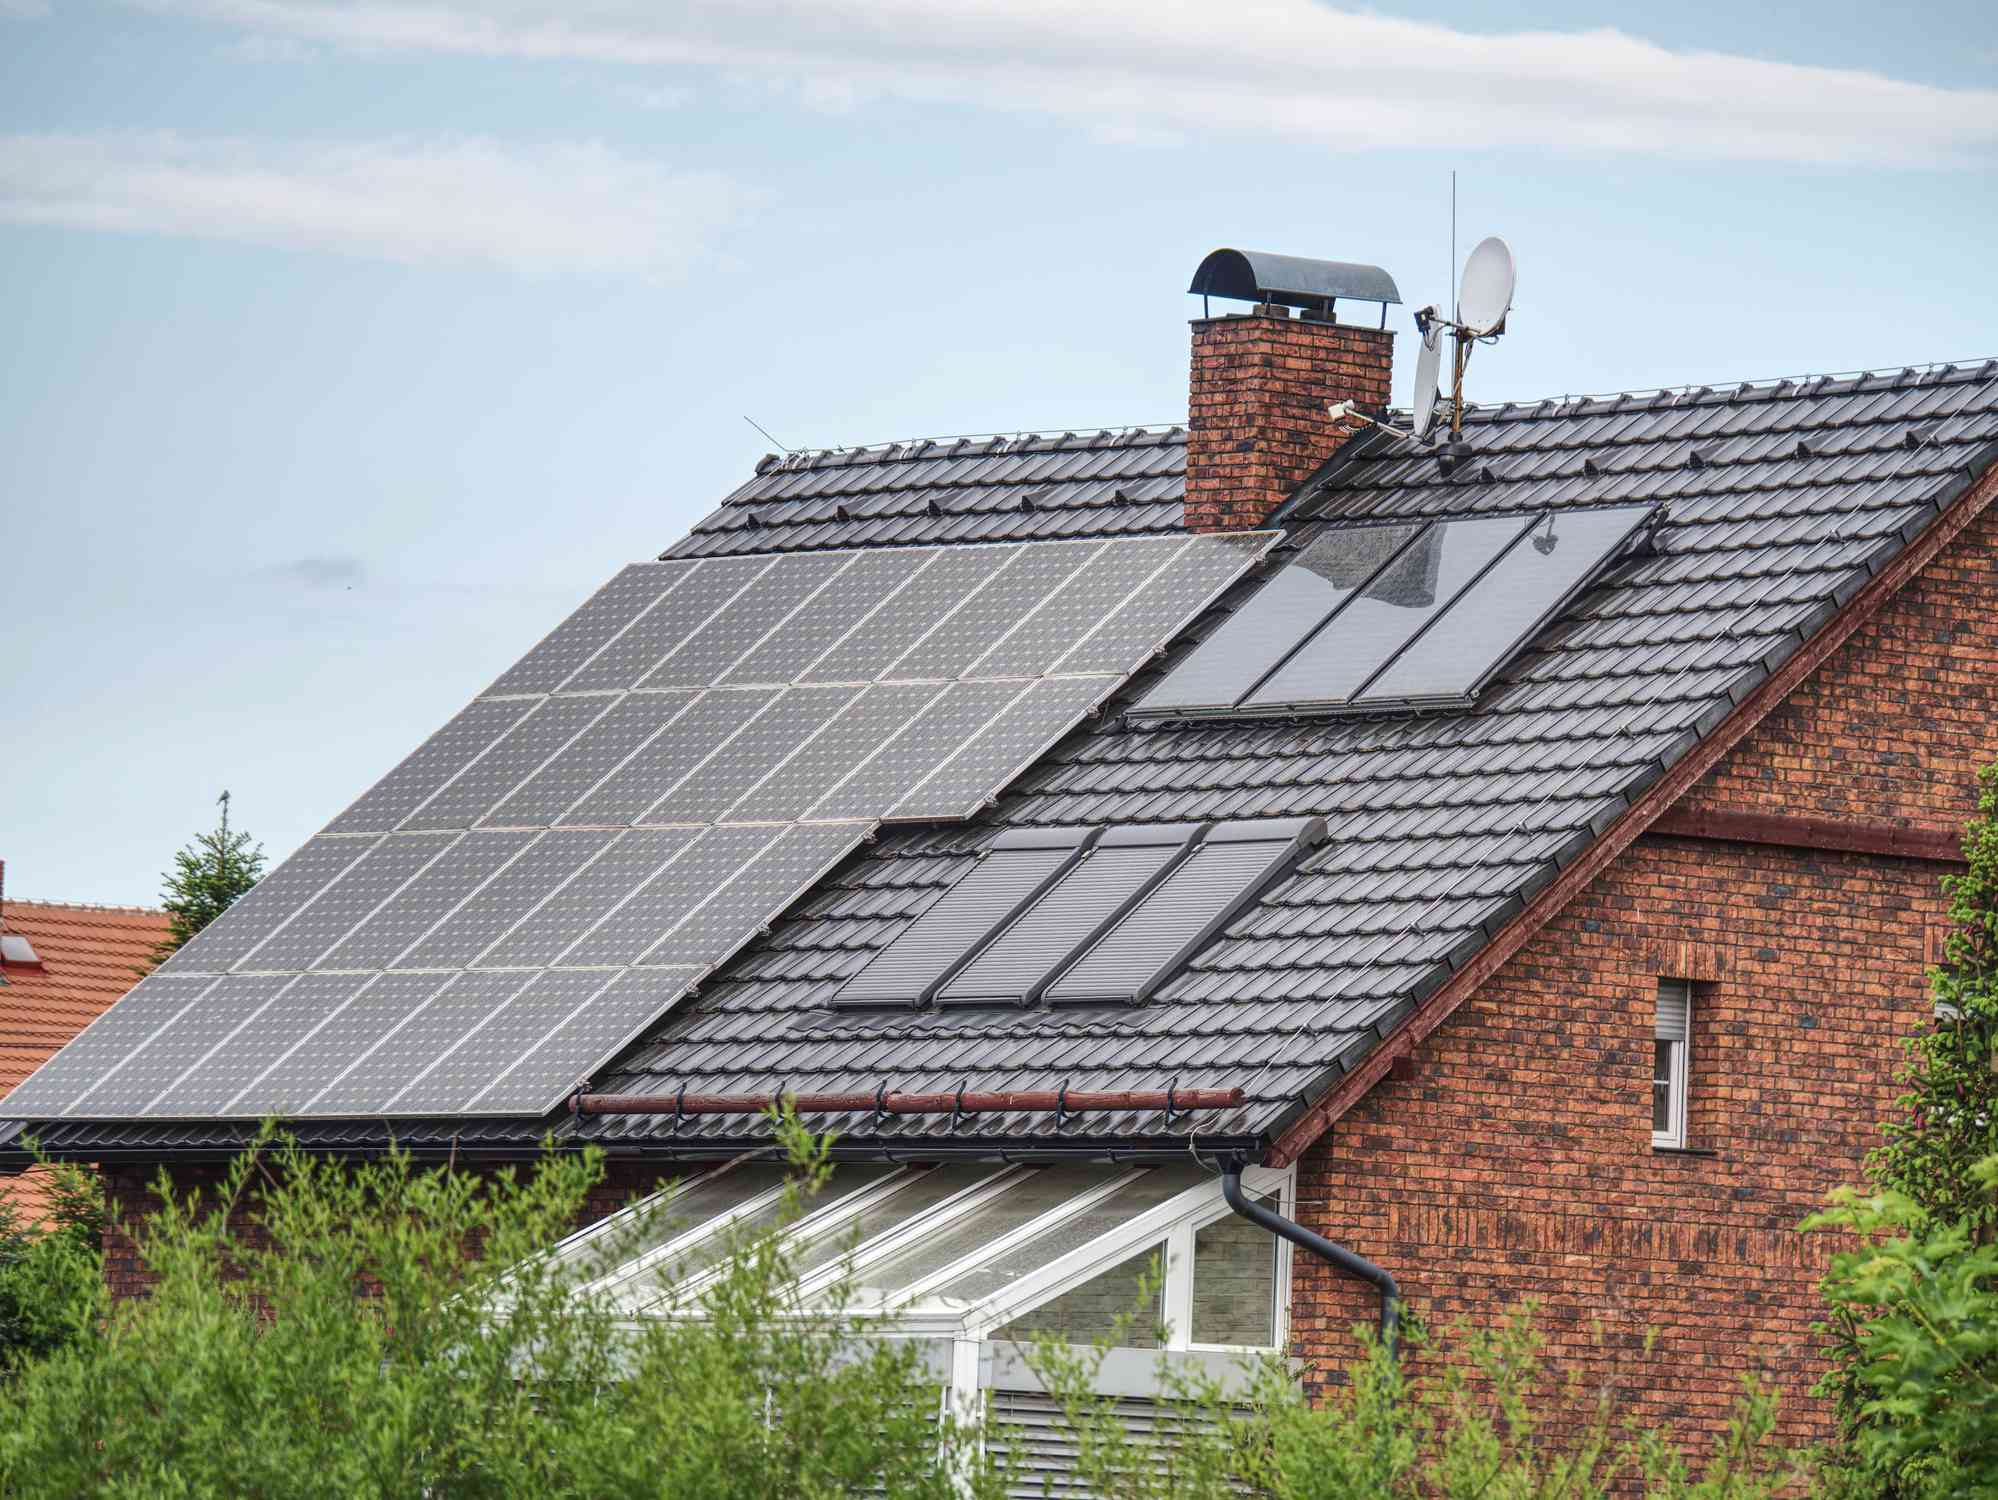 Solar panels on a roof of a brick house.